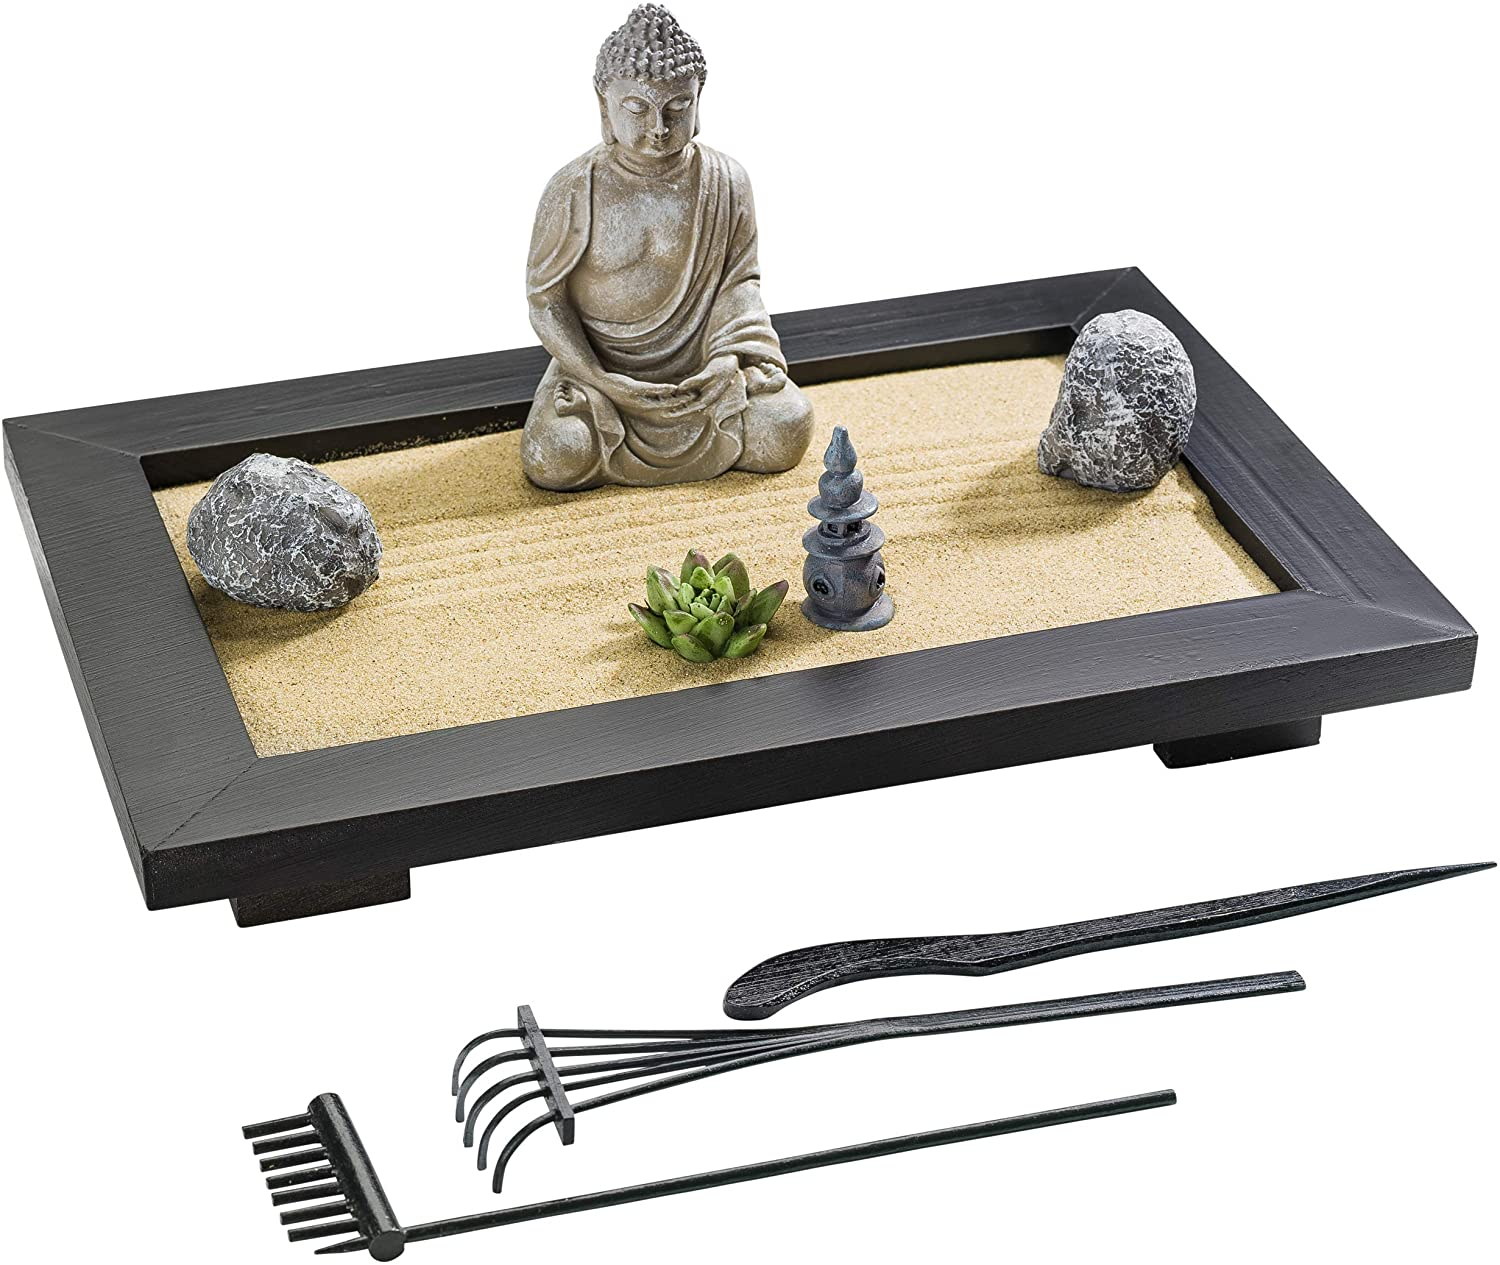 ZANTRA Premium Zen Garden for Desk 12 x 8 inch, Office and Home Decor, Wooden Sand Tray, Buddha, Lotus, Rock Features, Pagoda, Bamboo Rakes, Info Guide – Mini Zen Garden for Stress Relief, Meditation